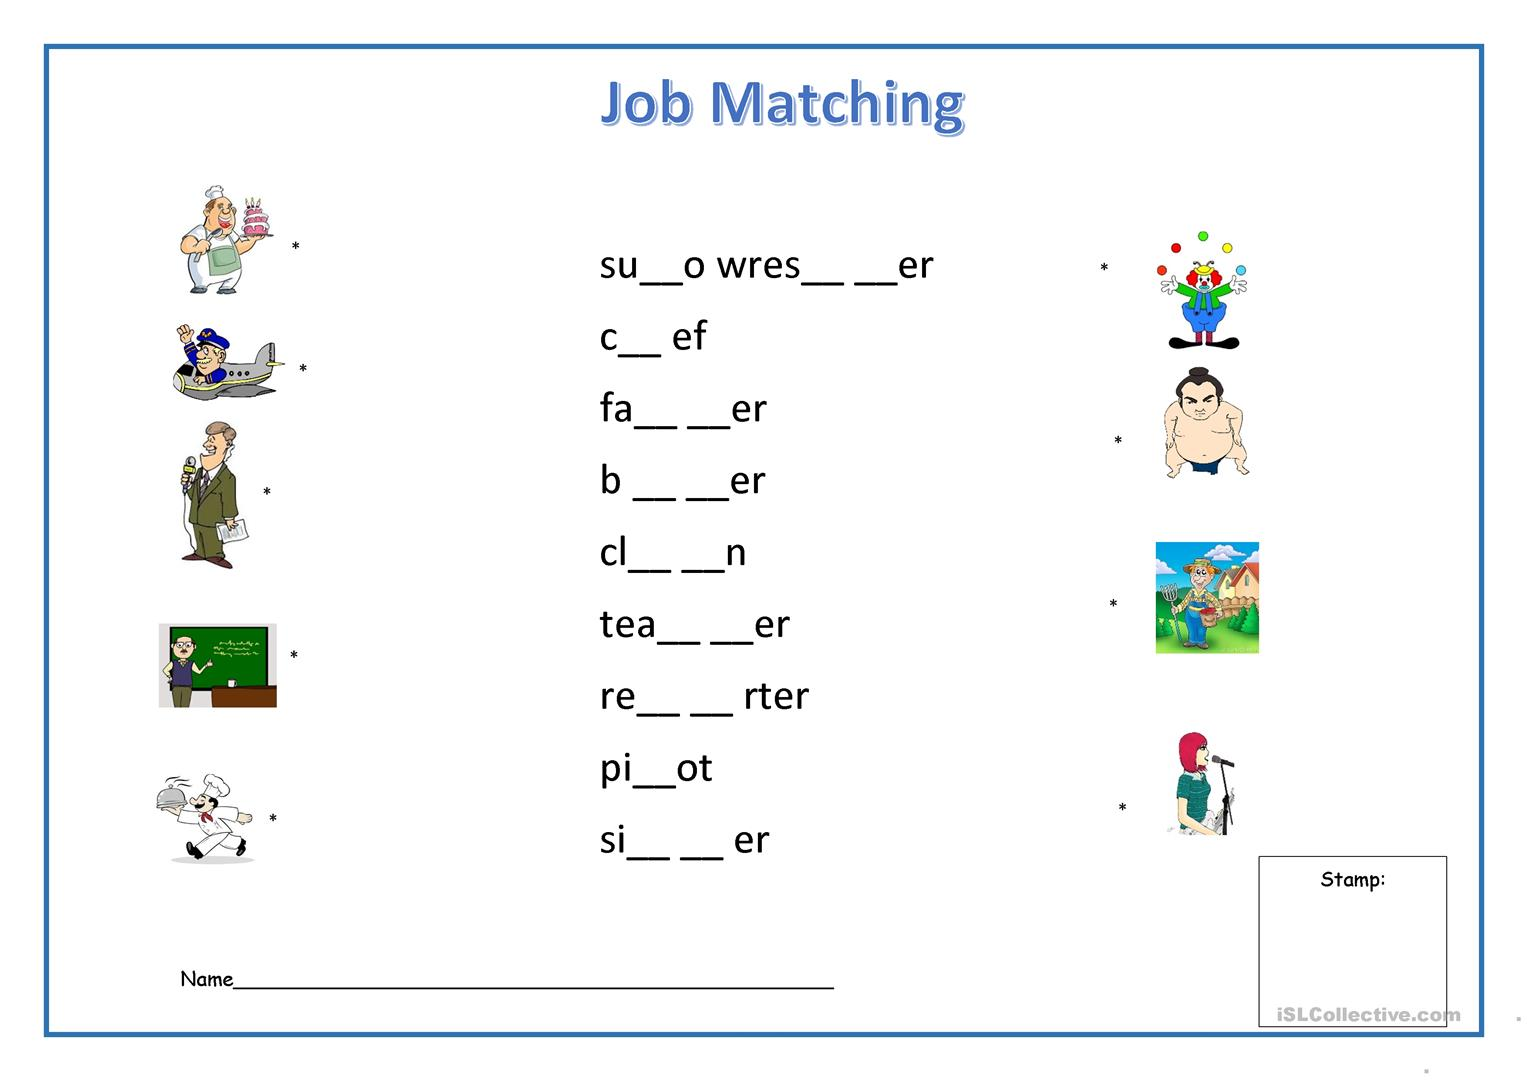 Wp A additionally Animal Dominoes Flashcards Fun Activities Games Games further Small Summer besides Emotions Matching Worksheet in addition Job Matching. on printable vocabulary match up